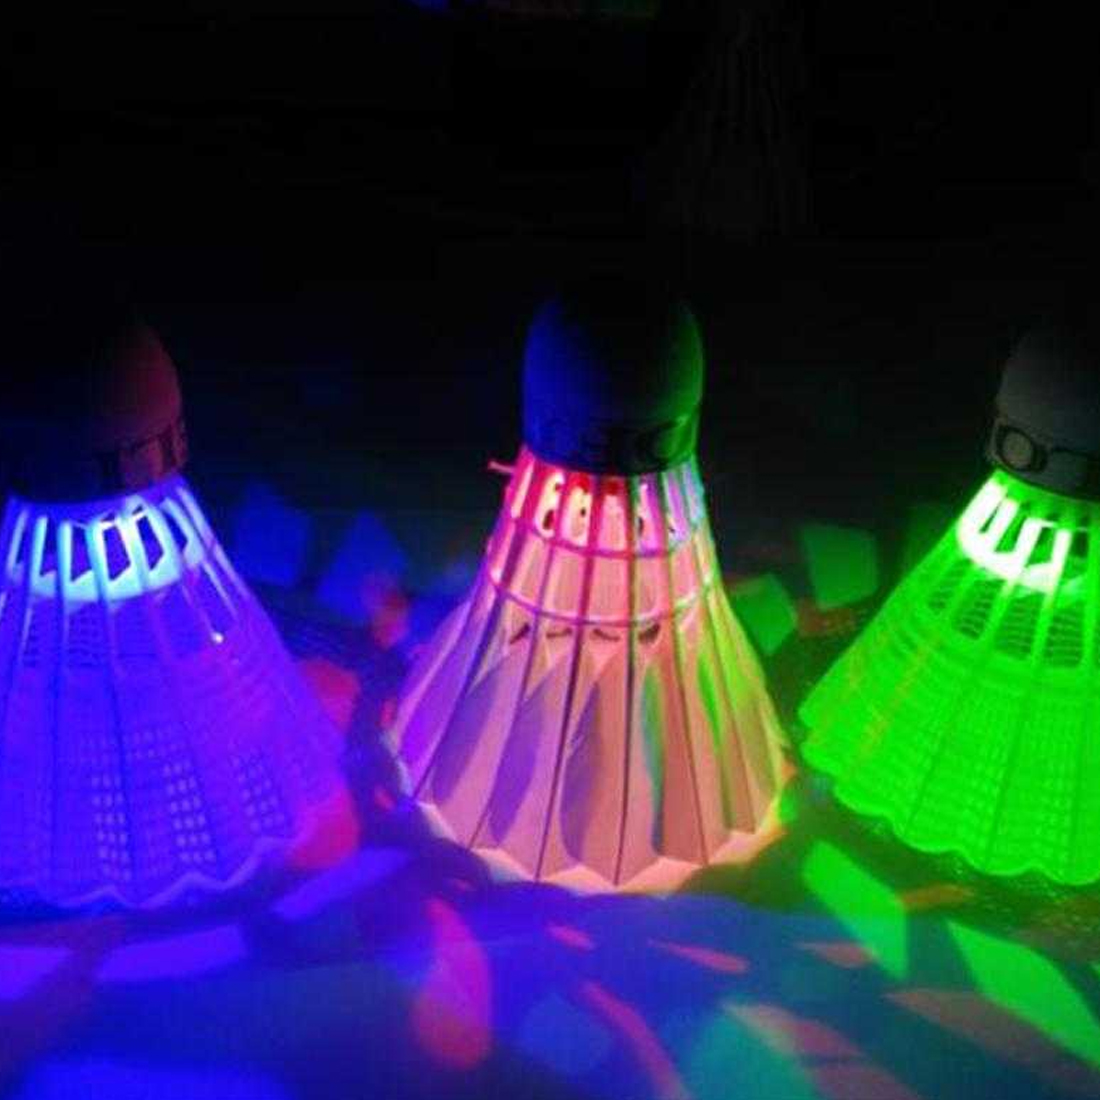 New 4Pcs Colorful LED Badminton Shuttlecock Ball Feather Glow In Night Outdoor Entertainment Sport Accessories(China)